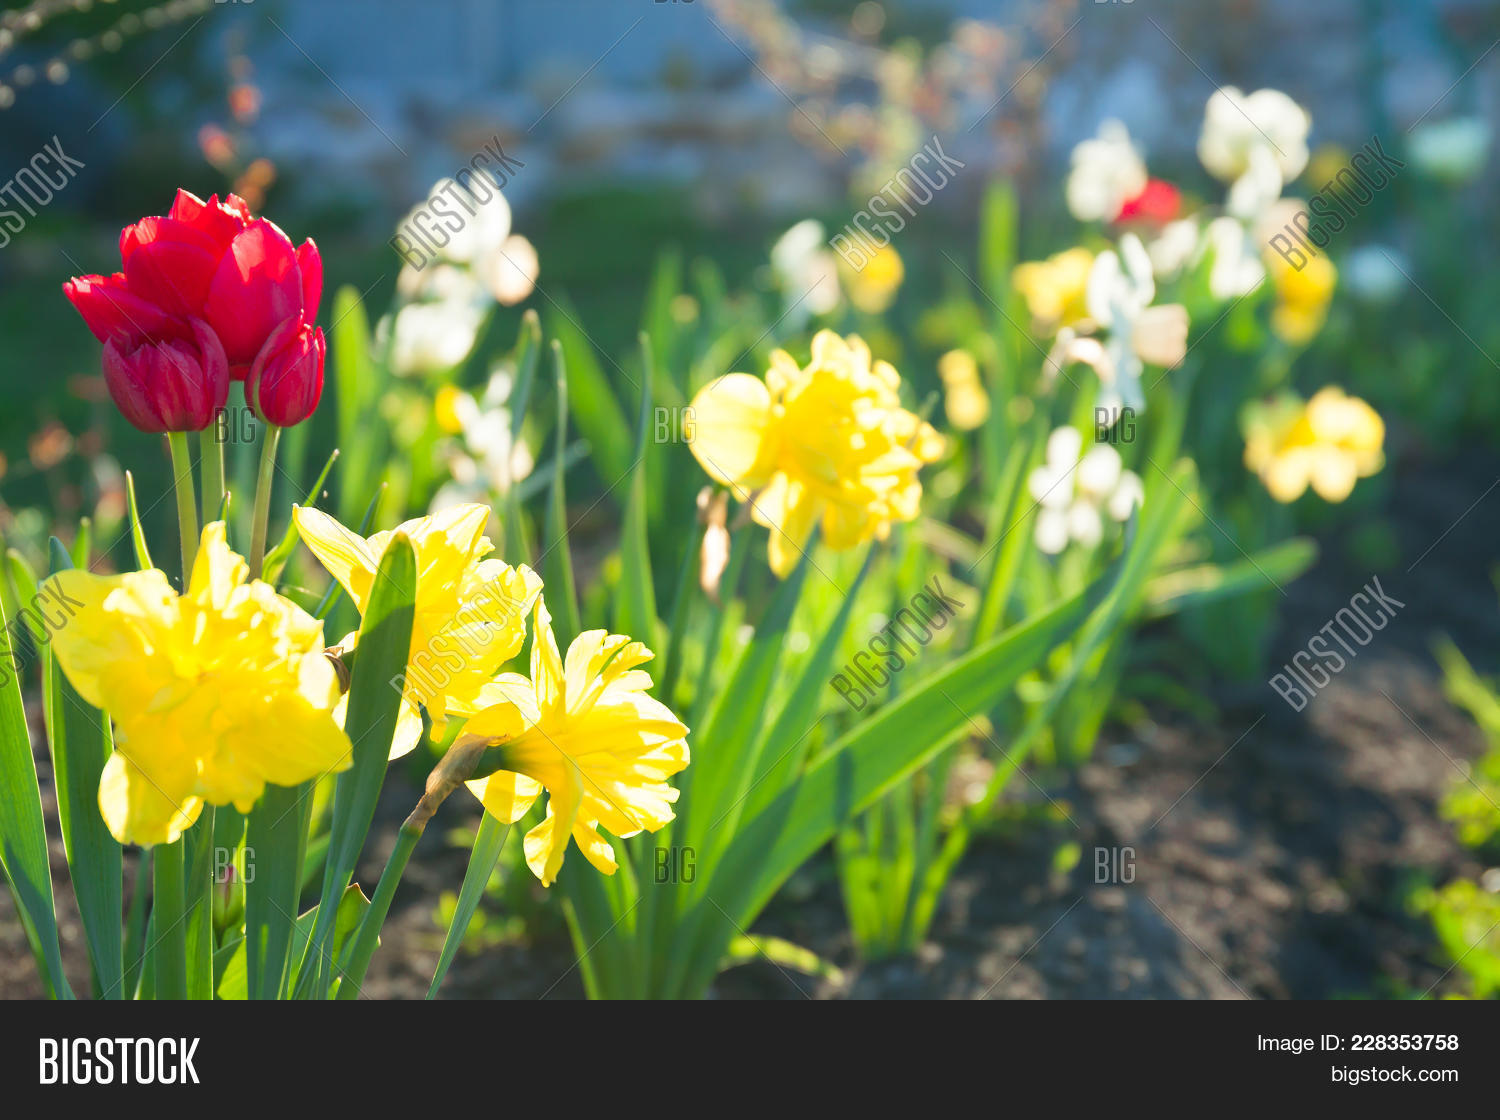 Spring flowers image photo free trial bigstock spring flowers daffodils and tulips flowering in garden on a flower bed spring landscape with mightylinksfo